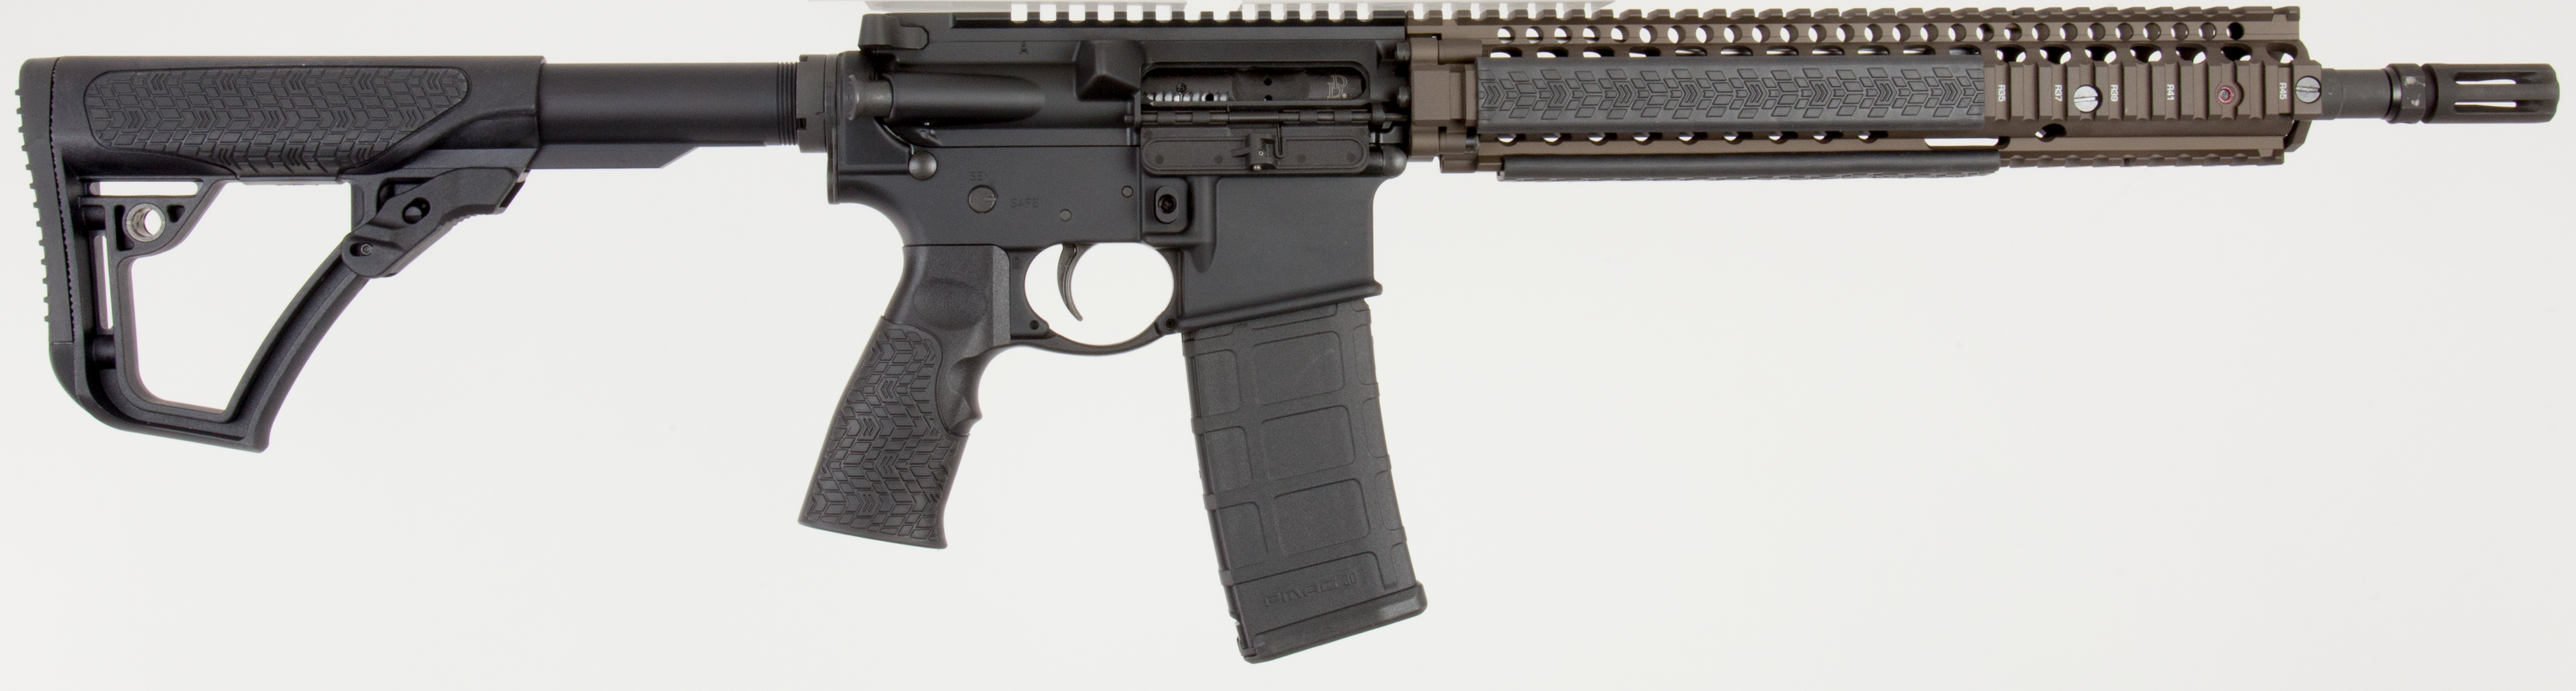 Daniel Defense 06027055 DDM4 M4A1 *CA Compliant* Semi-Automatic 223 Remington/5.56 NATO 14